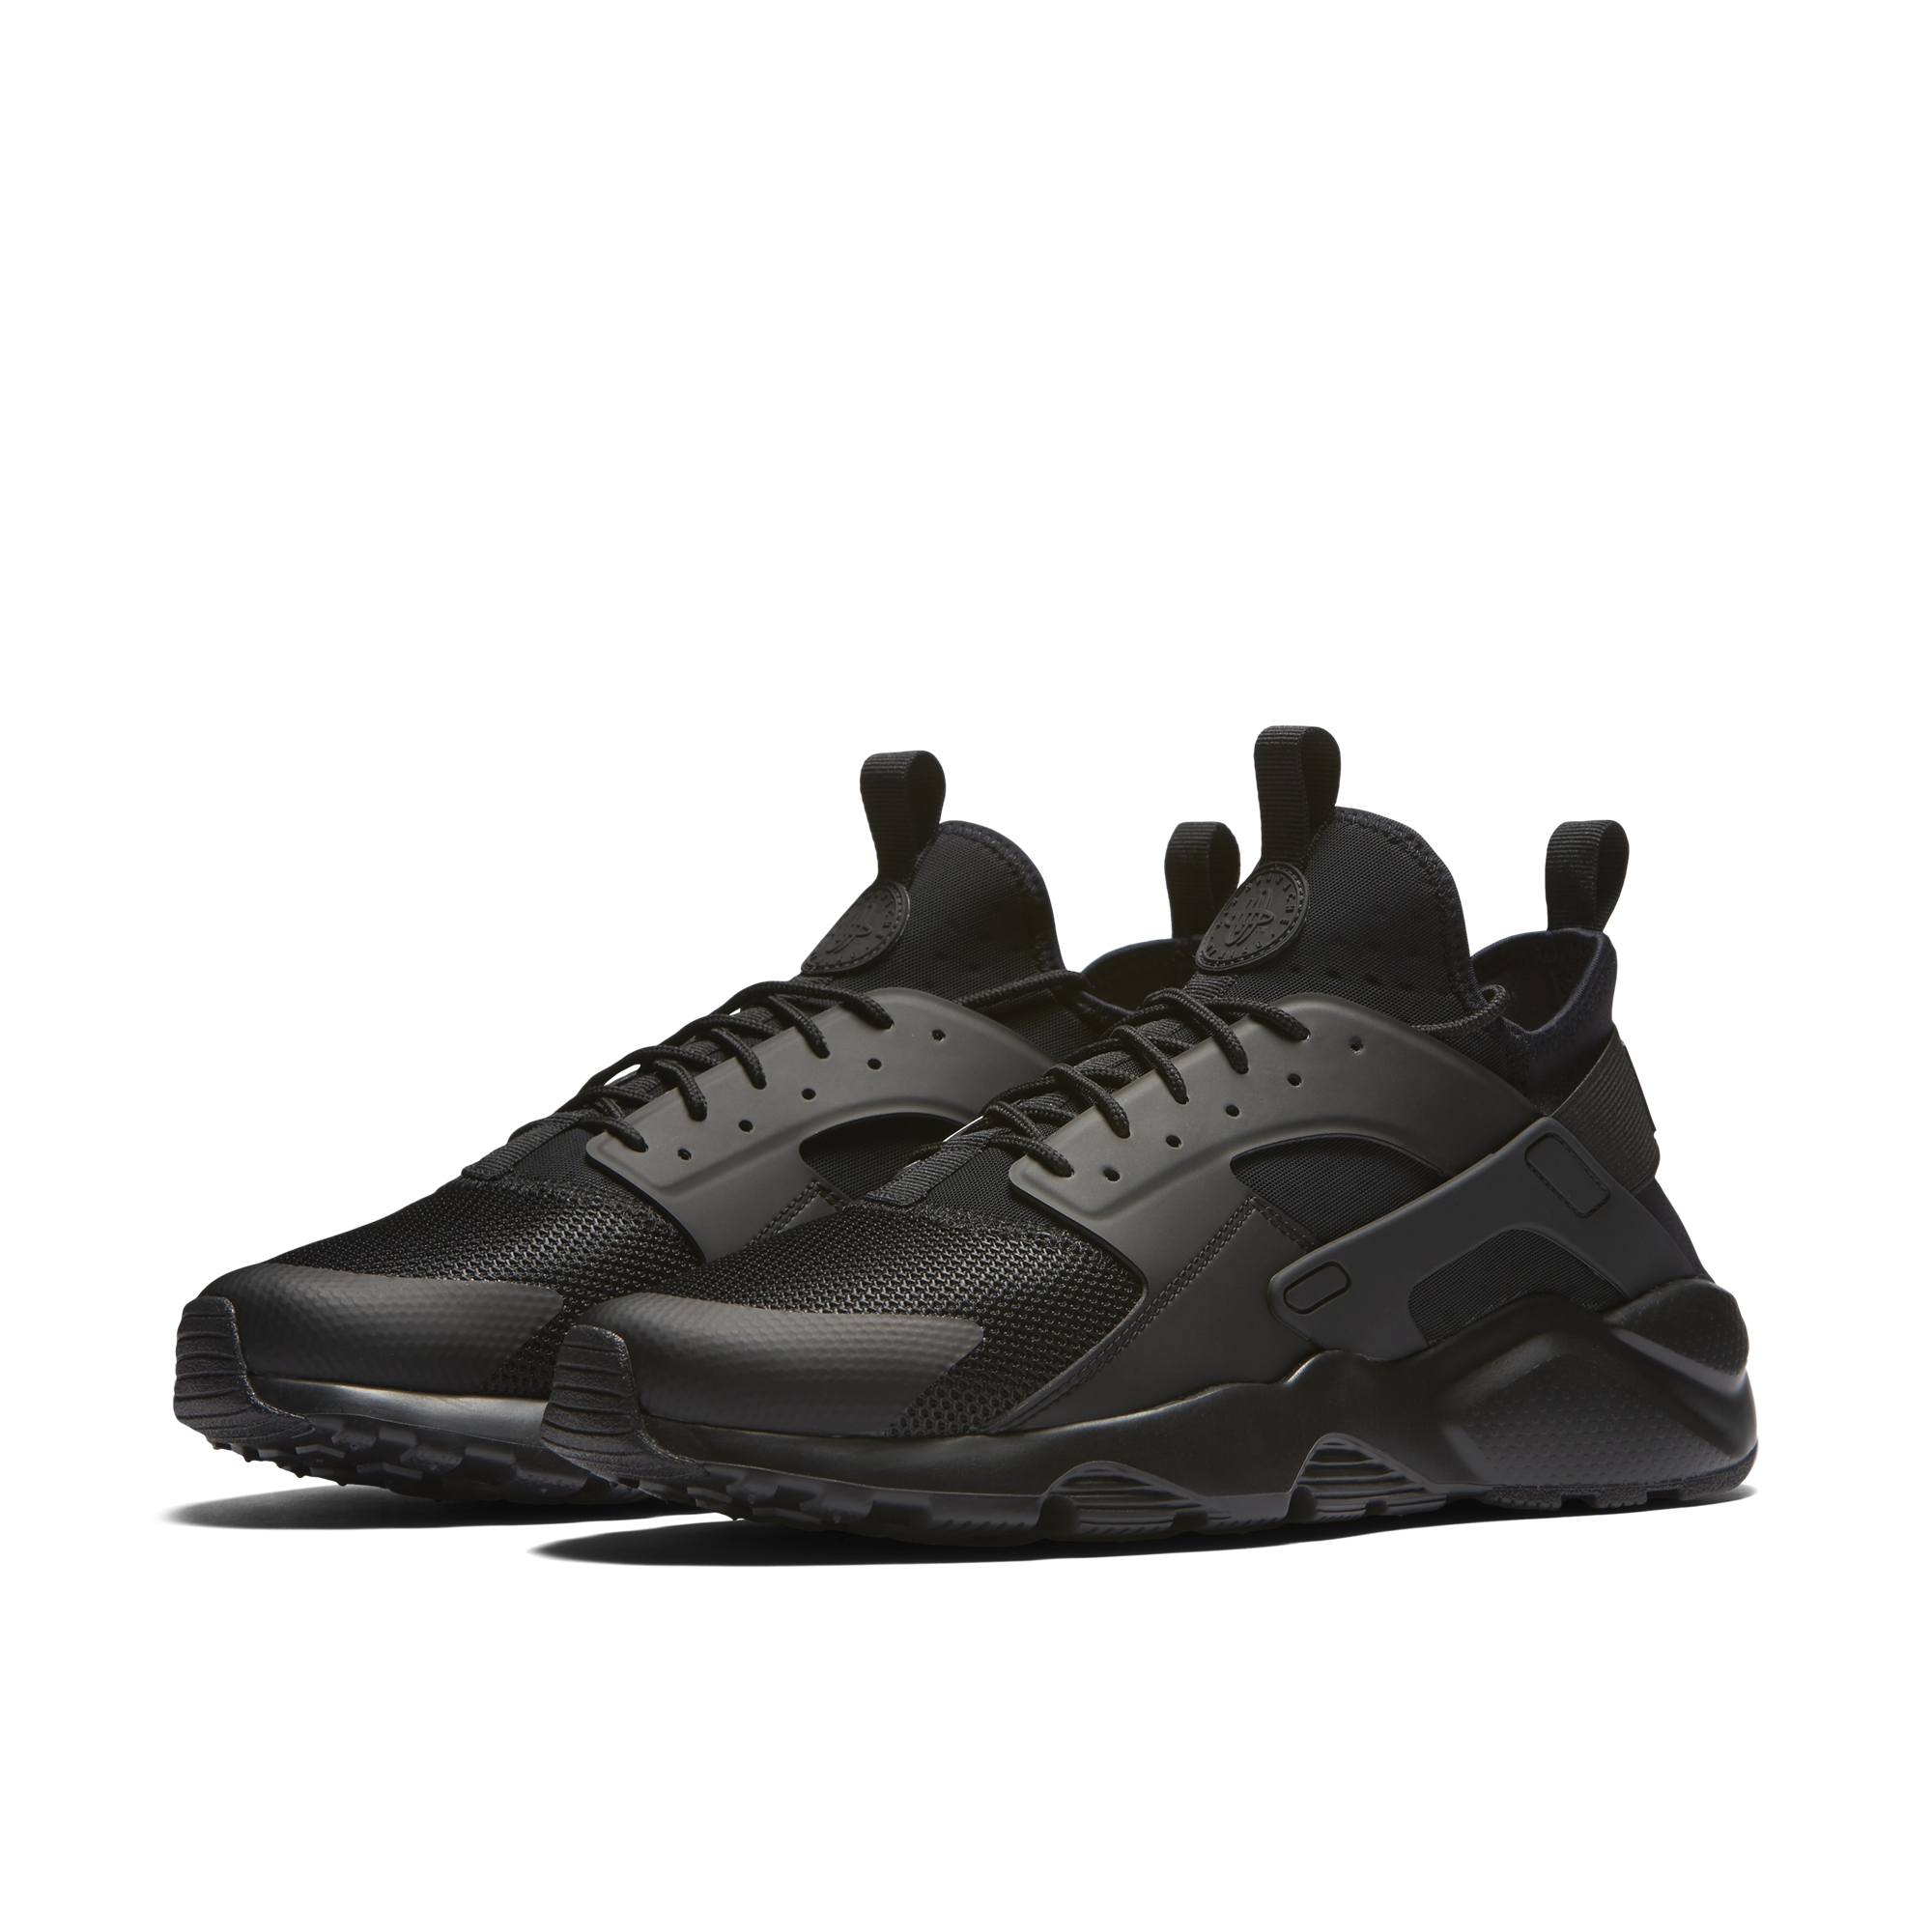 on sale ca9fd e8d4e US $55.33 43% OFF|Original Official NIKE AIR HUARACHE RUN ULTRA Men's  Running Shoes Sneakers 819685 Outdoor Ultra Boost Athletic Durable  819685-in ...